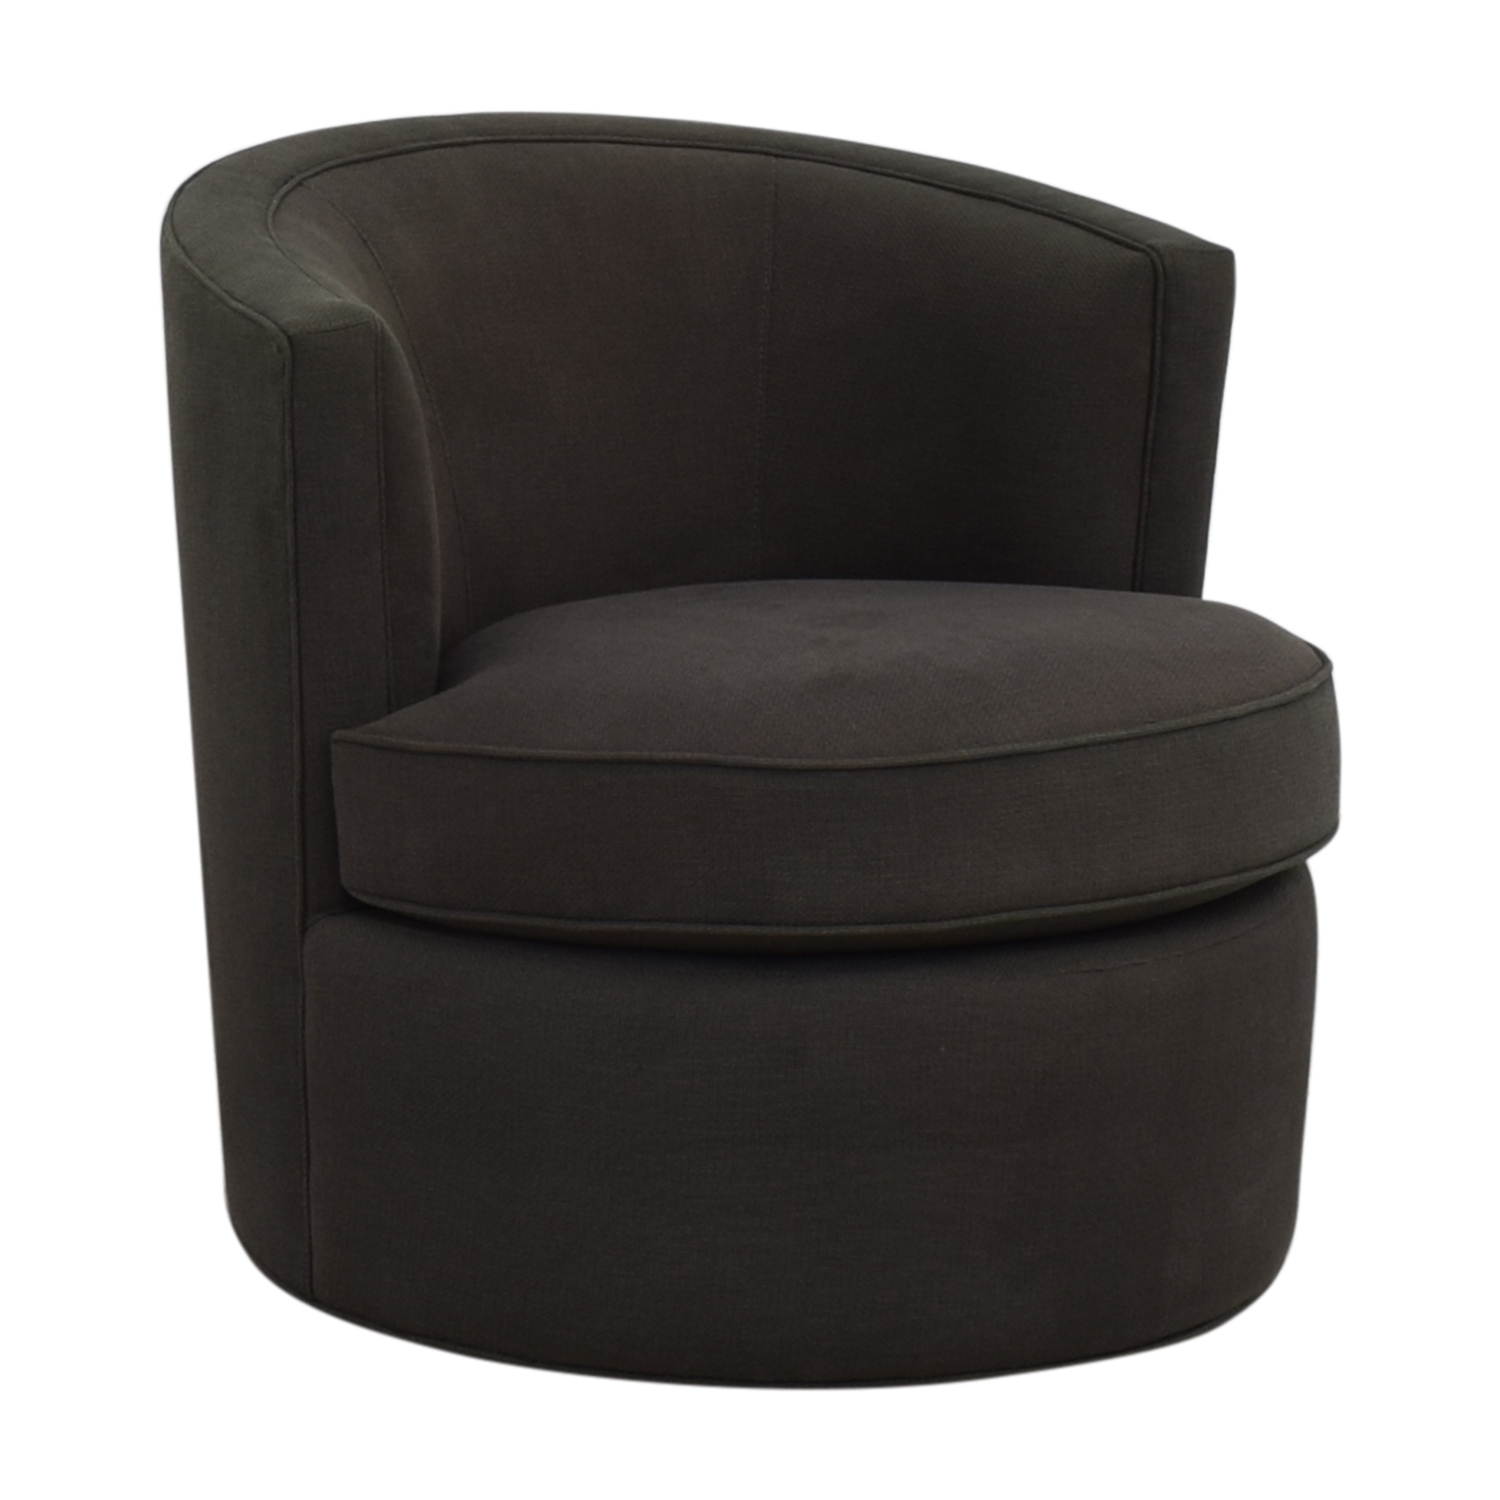 Room & Board Otis Swivel Chair sale